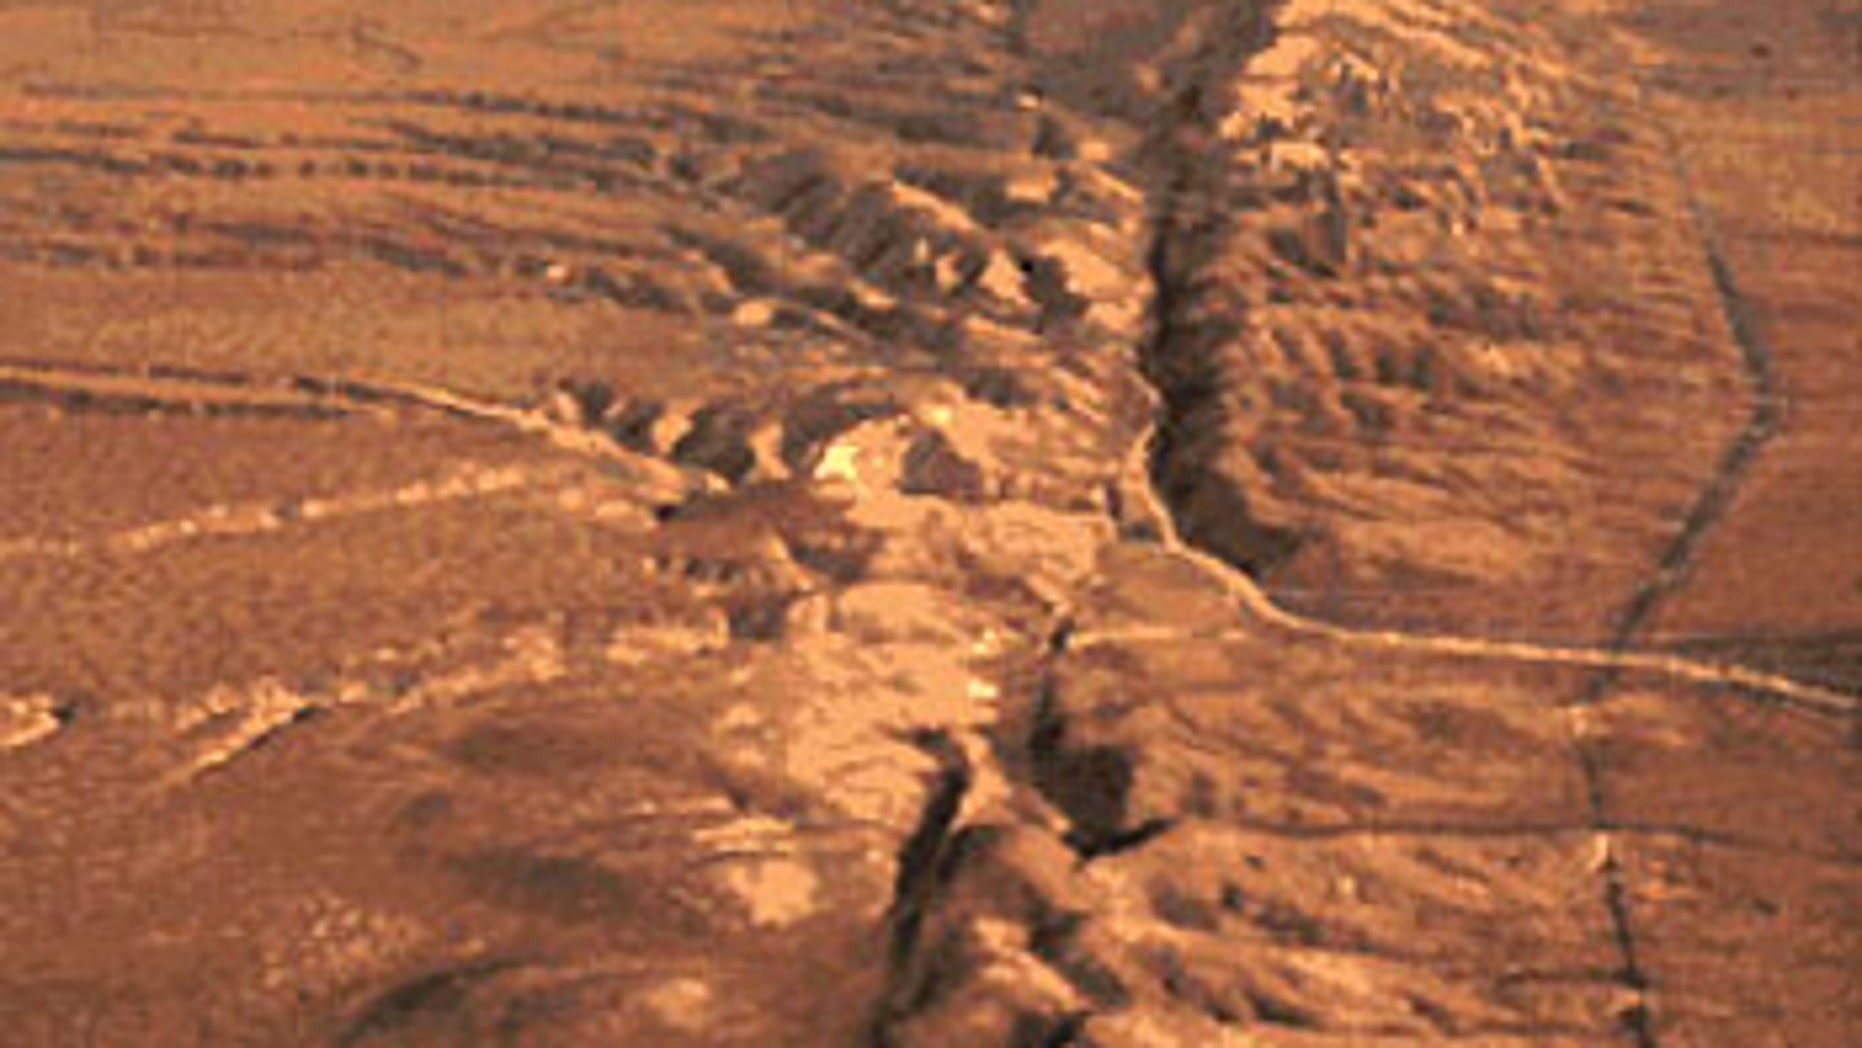 Part of the visible section of the San Andreas Fault.